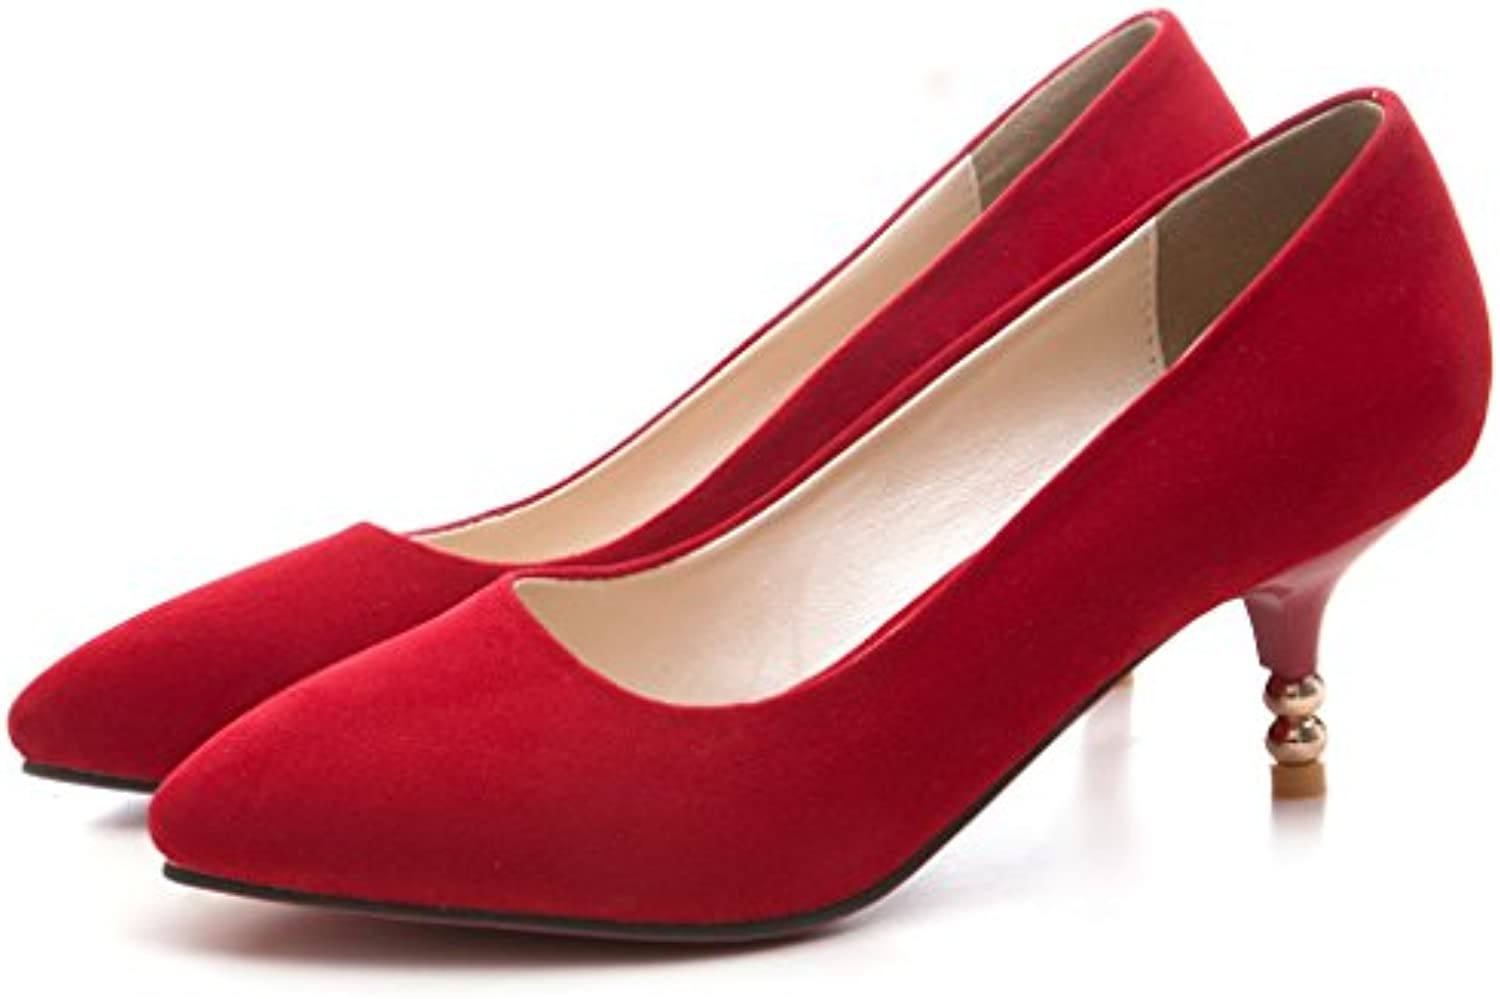 dd2a89eedab Kaloosh Women s Suede Suede Suede Leather Pinted Toe Kitten Heels Party  Pumps Wedding Court Shoes B07BKQ3MLX